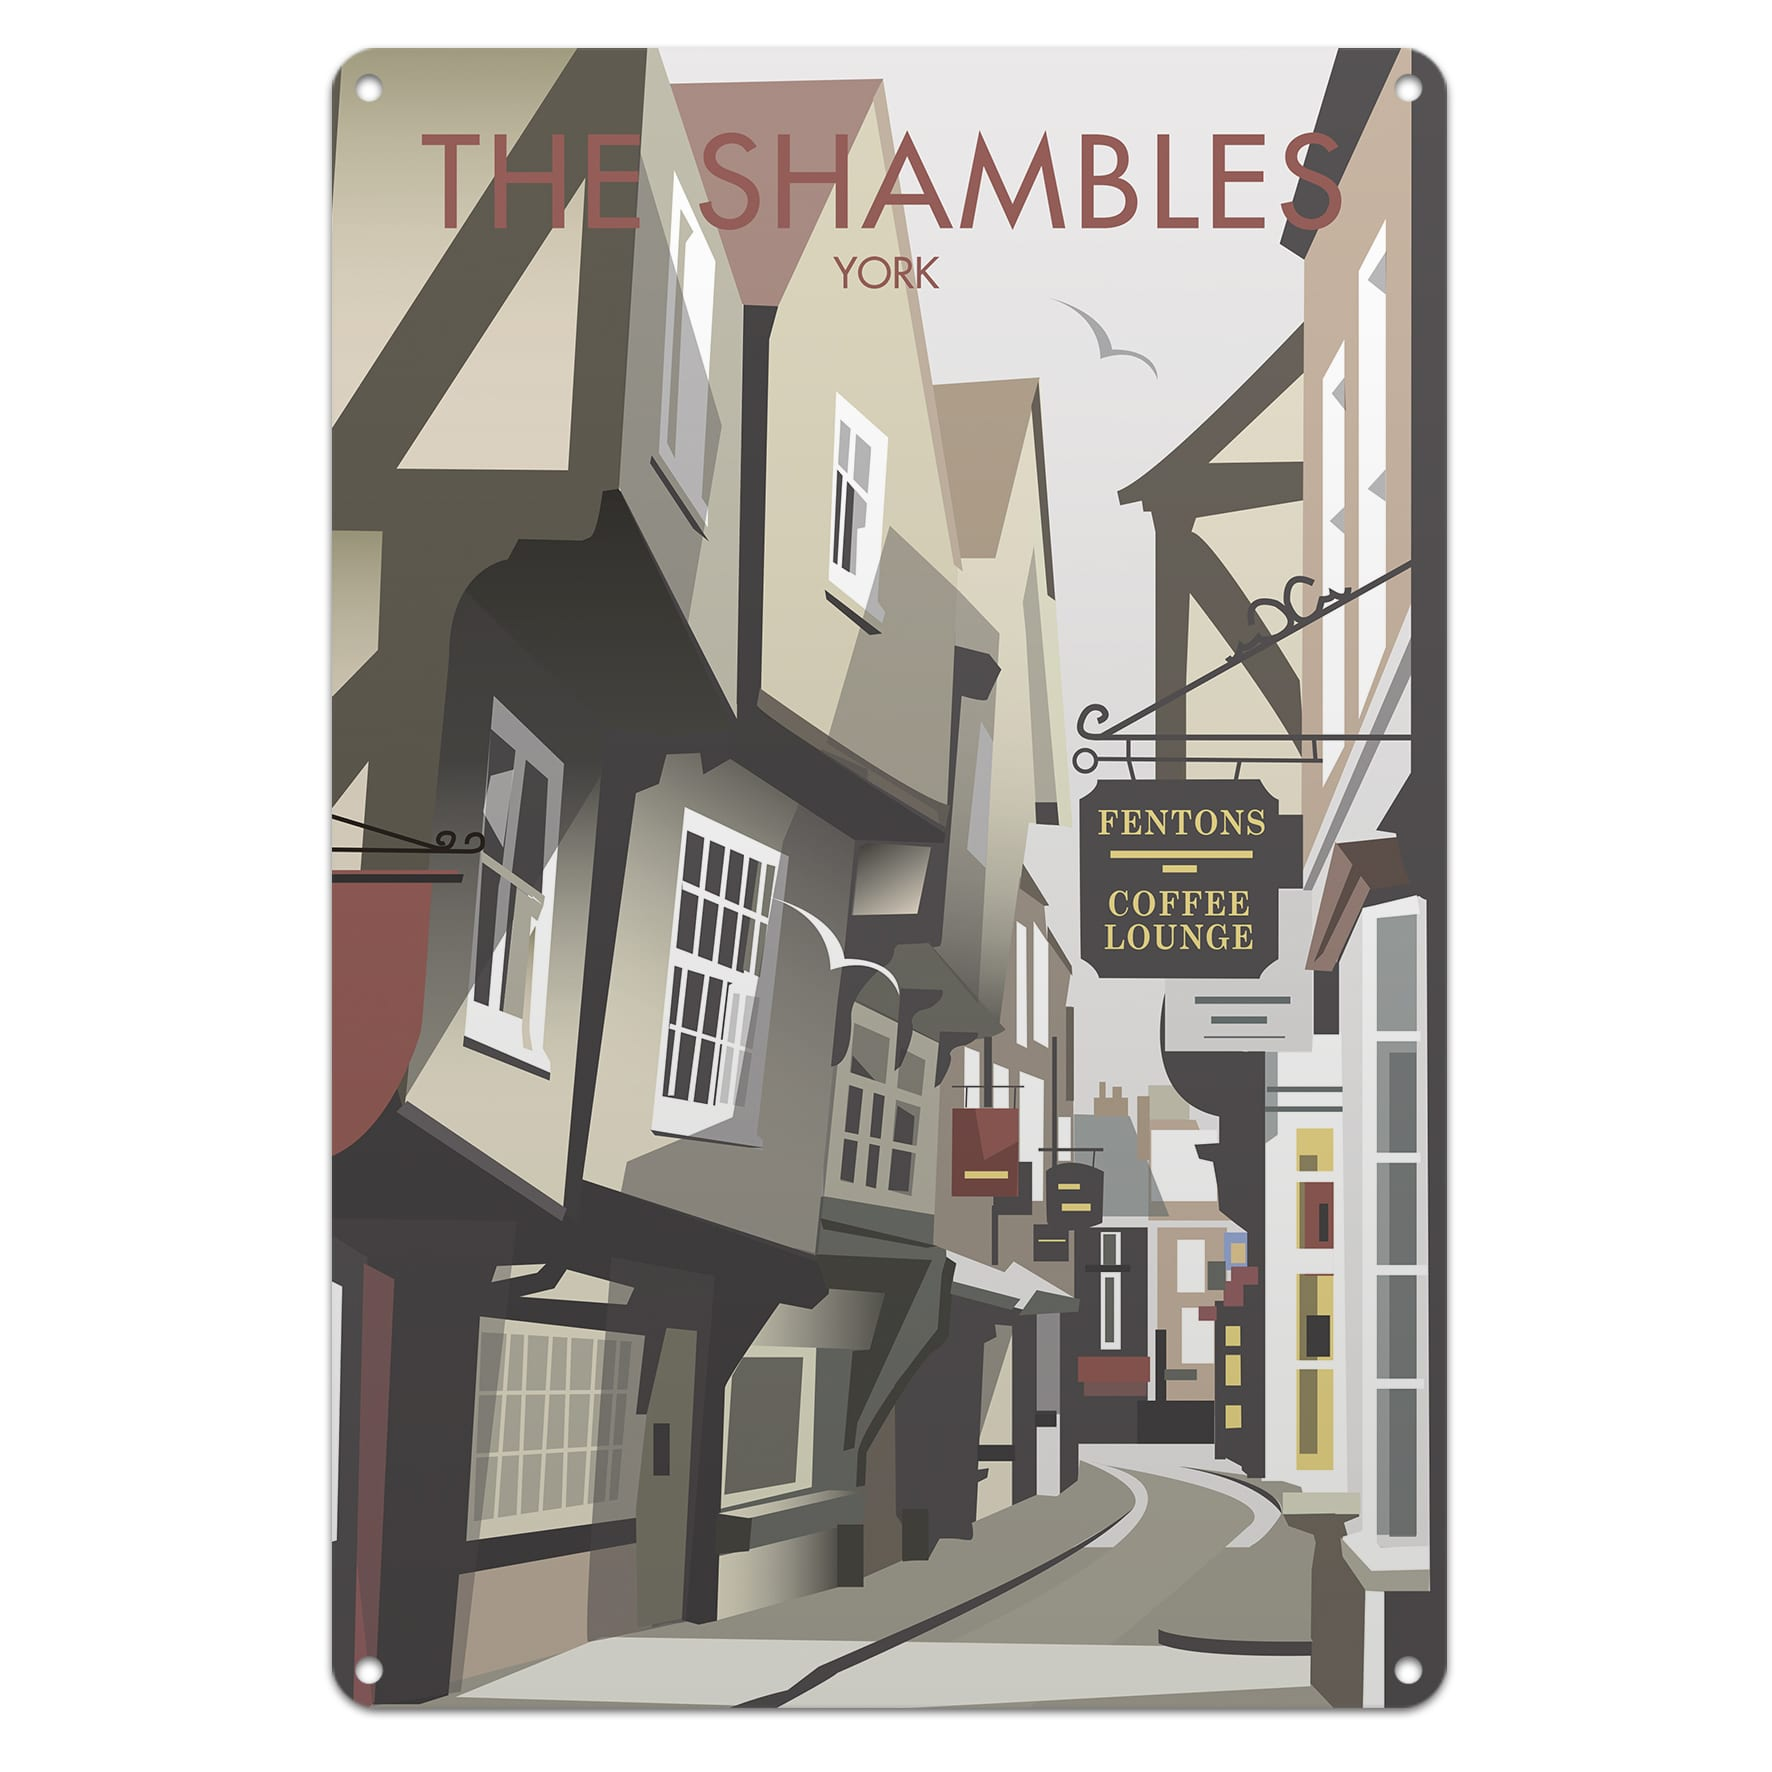 Top 100 most beautiful british slang words and phrases guide to dave thompson collection the shambles in york metal sign or tea towel shipping early december m4hsunfo